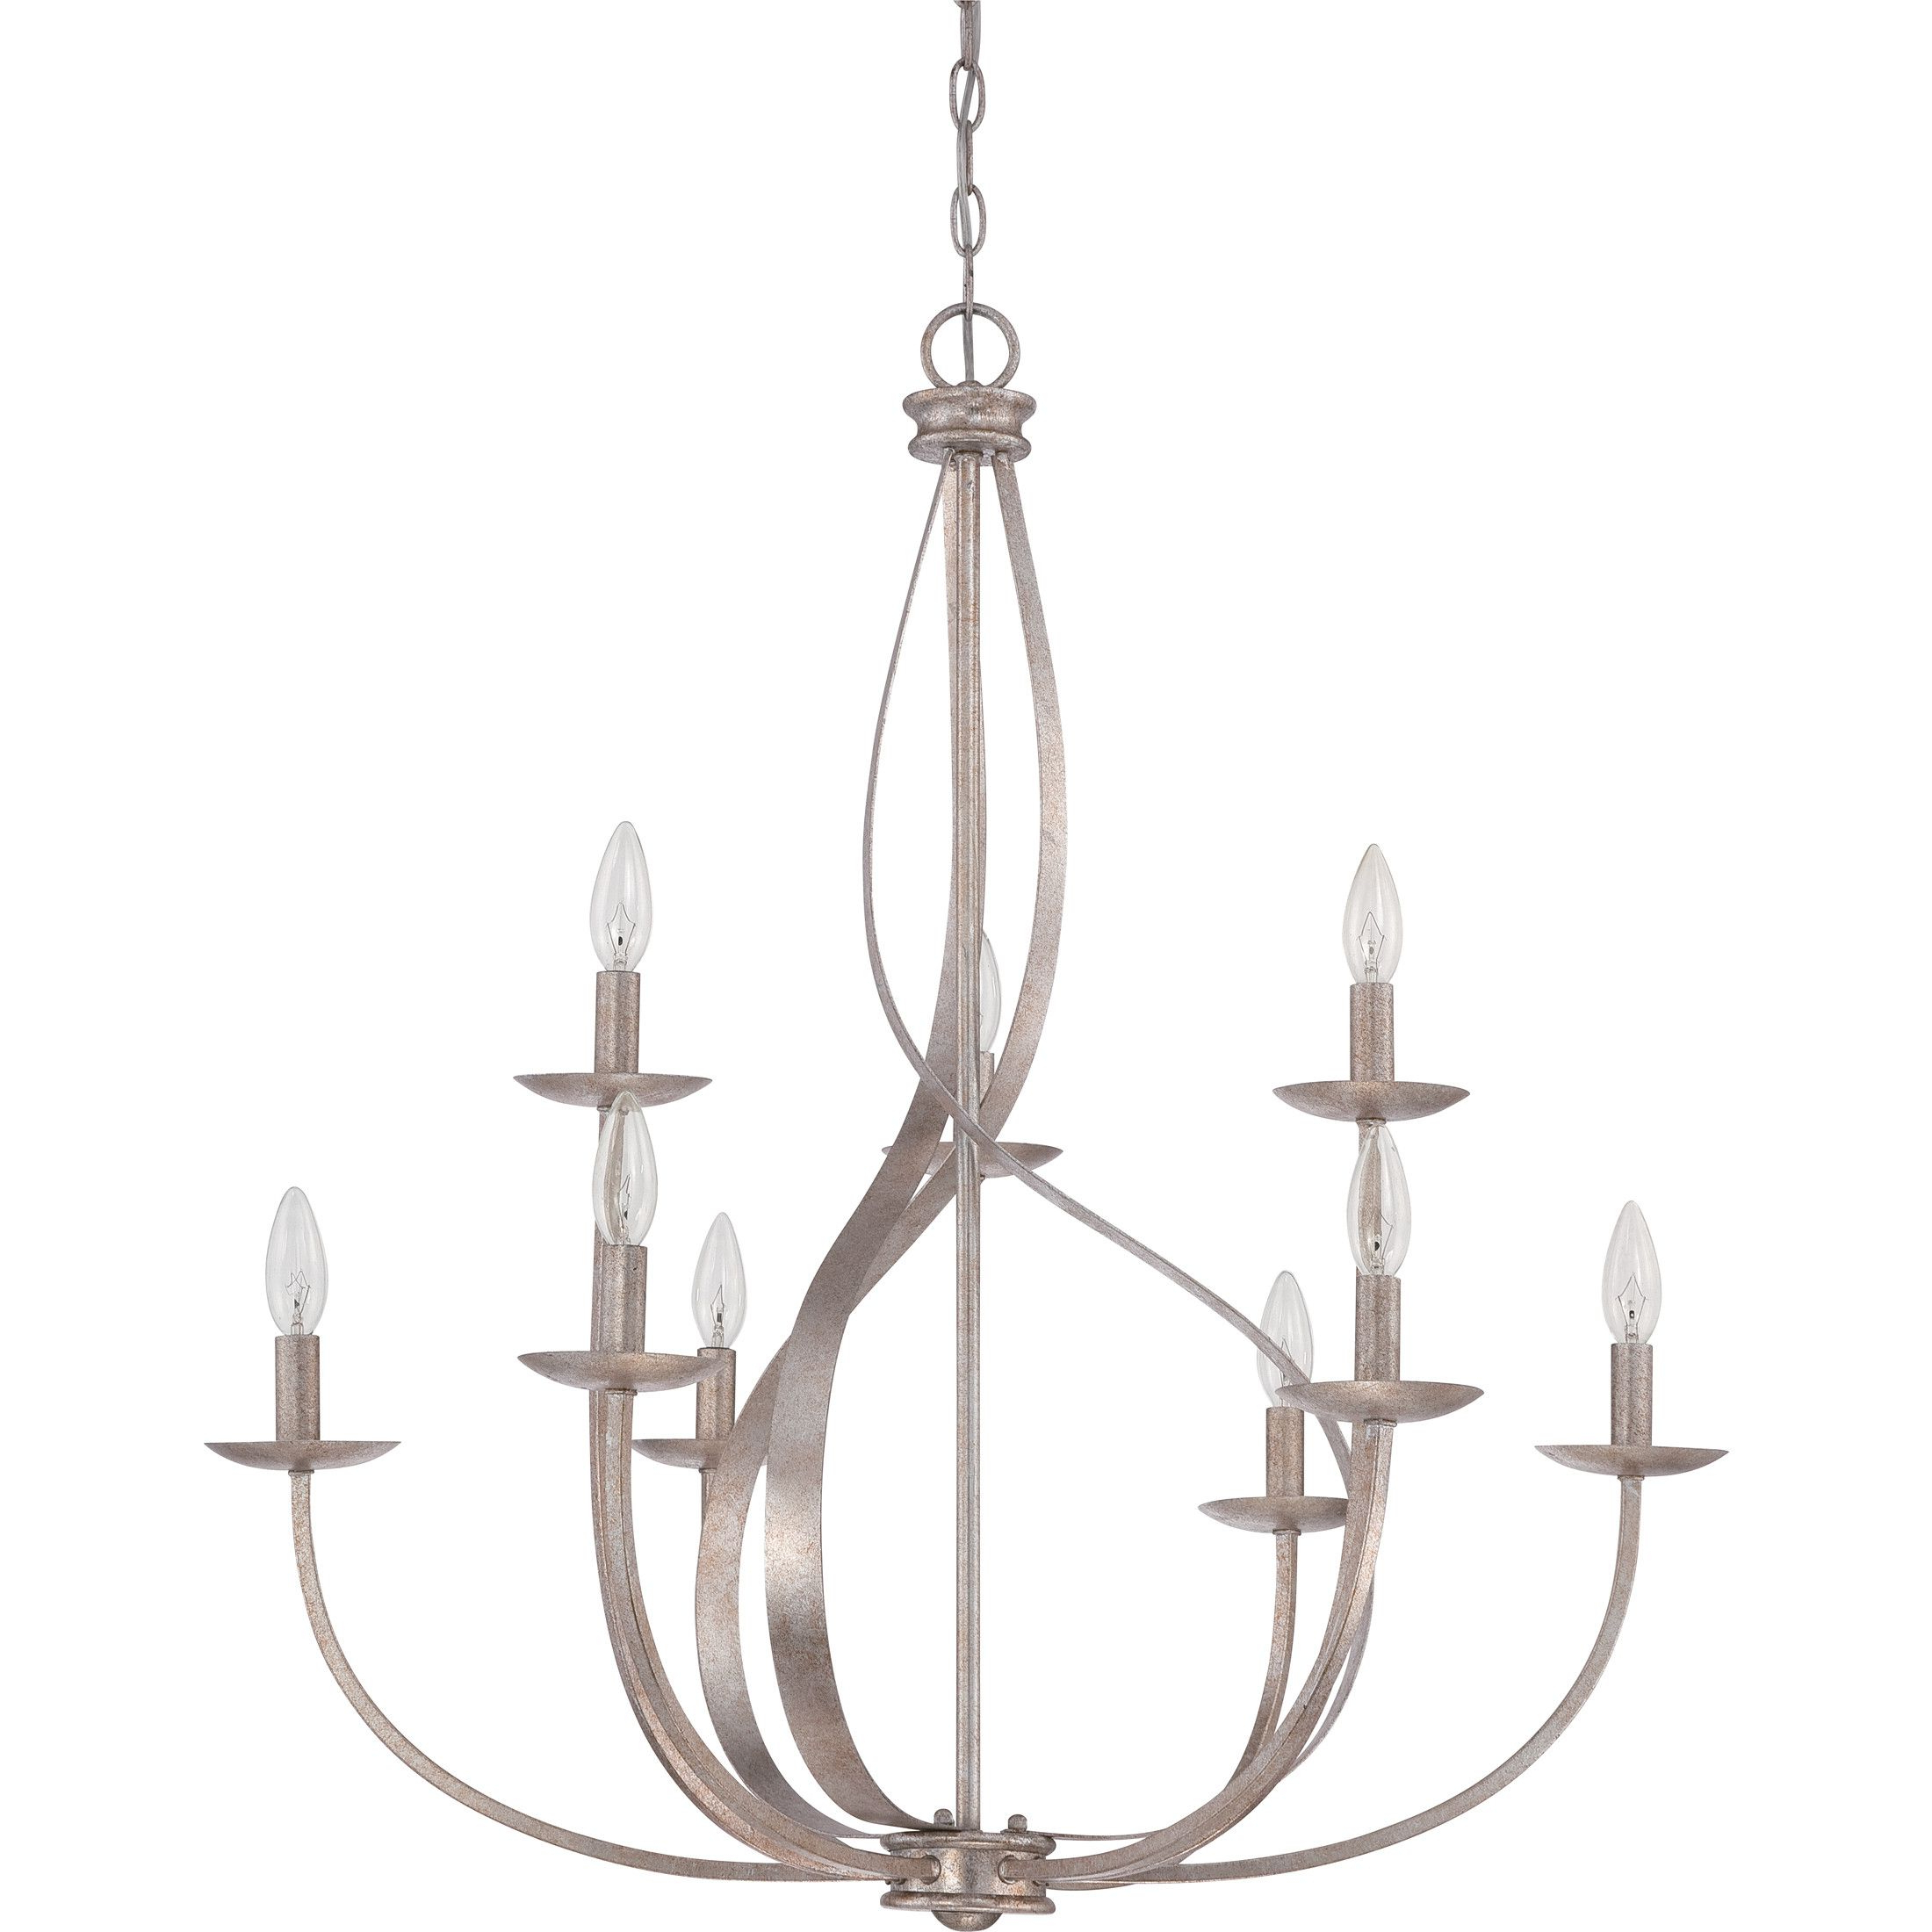 Current Lark Manor™ Emely 9 Light Candle Style Chandelier (View 10 of 20)